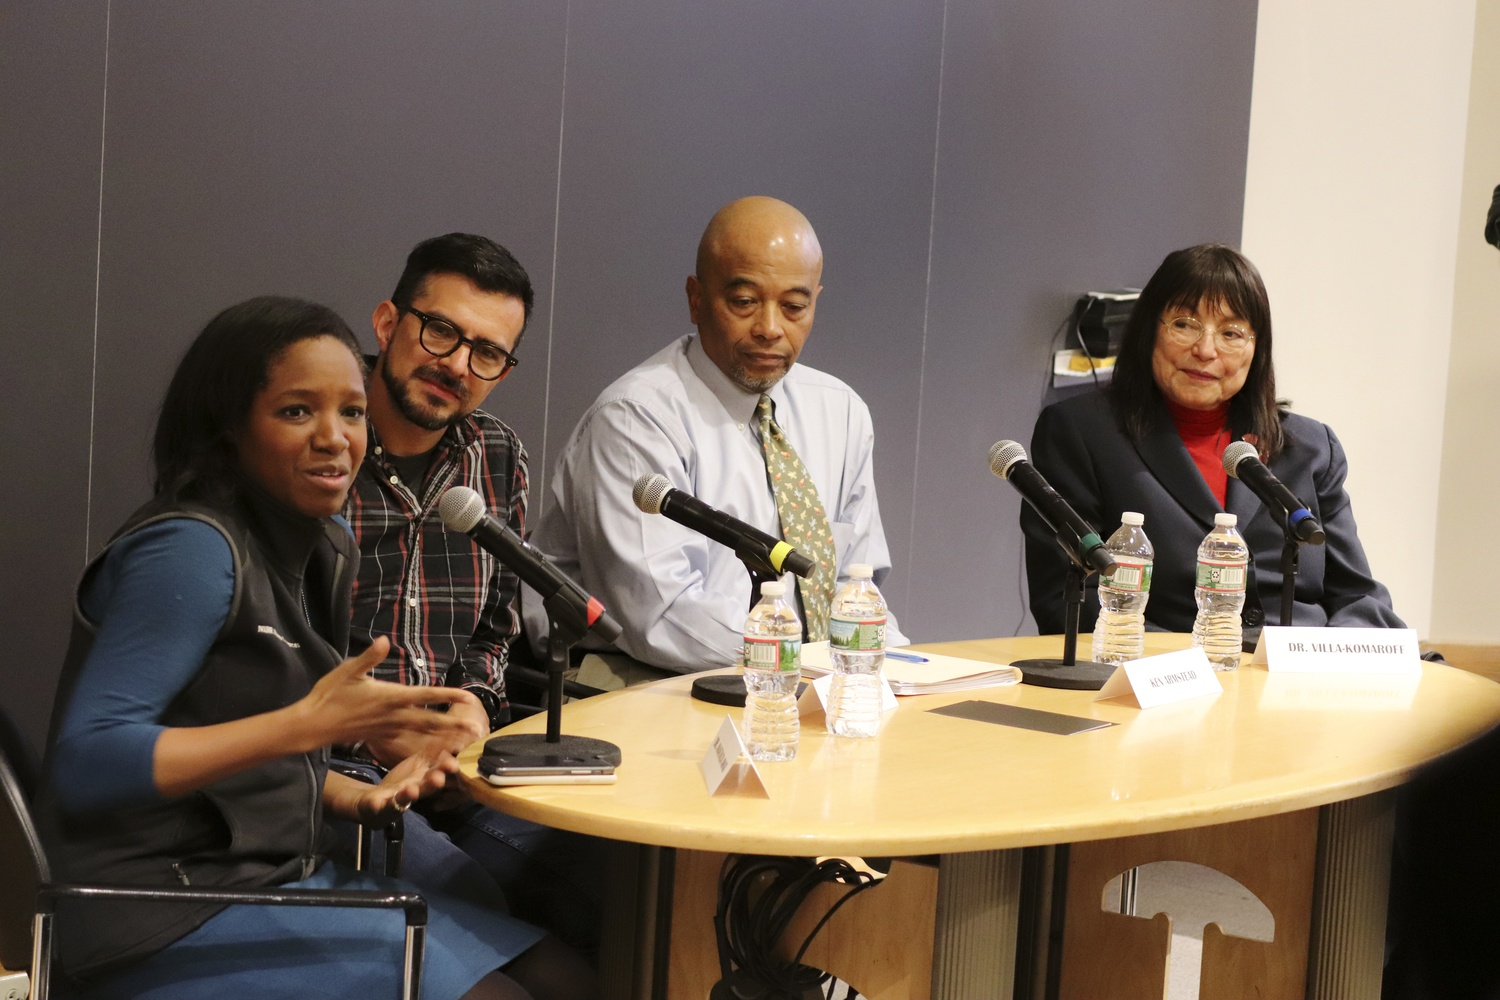 """Anastacia Awad, Ruben Lozano-Aguilera, Ken Armstead and Lydia Villa-Komaroff speak about their experiences in STEM fields during an event titled """"I'll Make Me a World: Voices for Diversity in STEM""""  Thursday afternoon in the Fong Auditorium."""